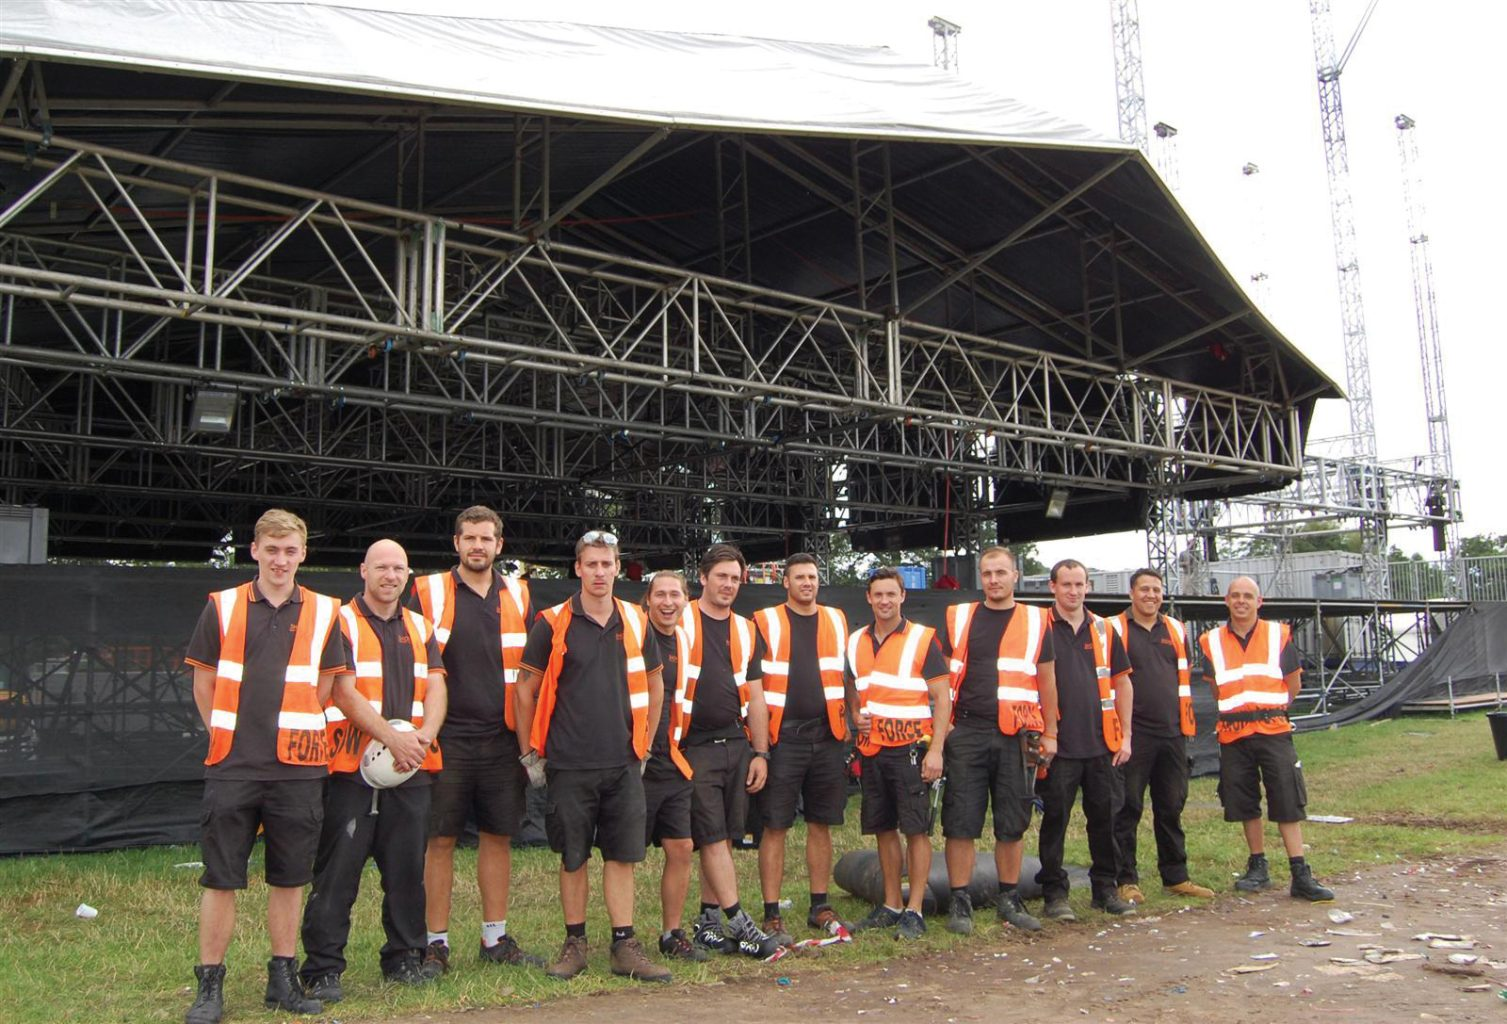 Stagehand supports touring crews and event production workers